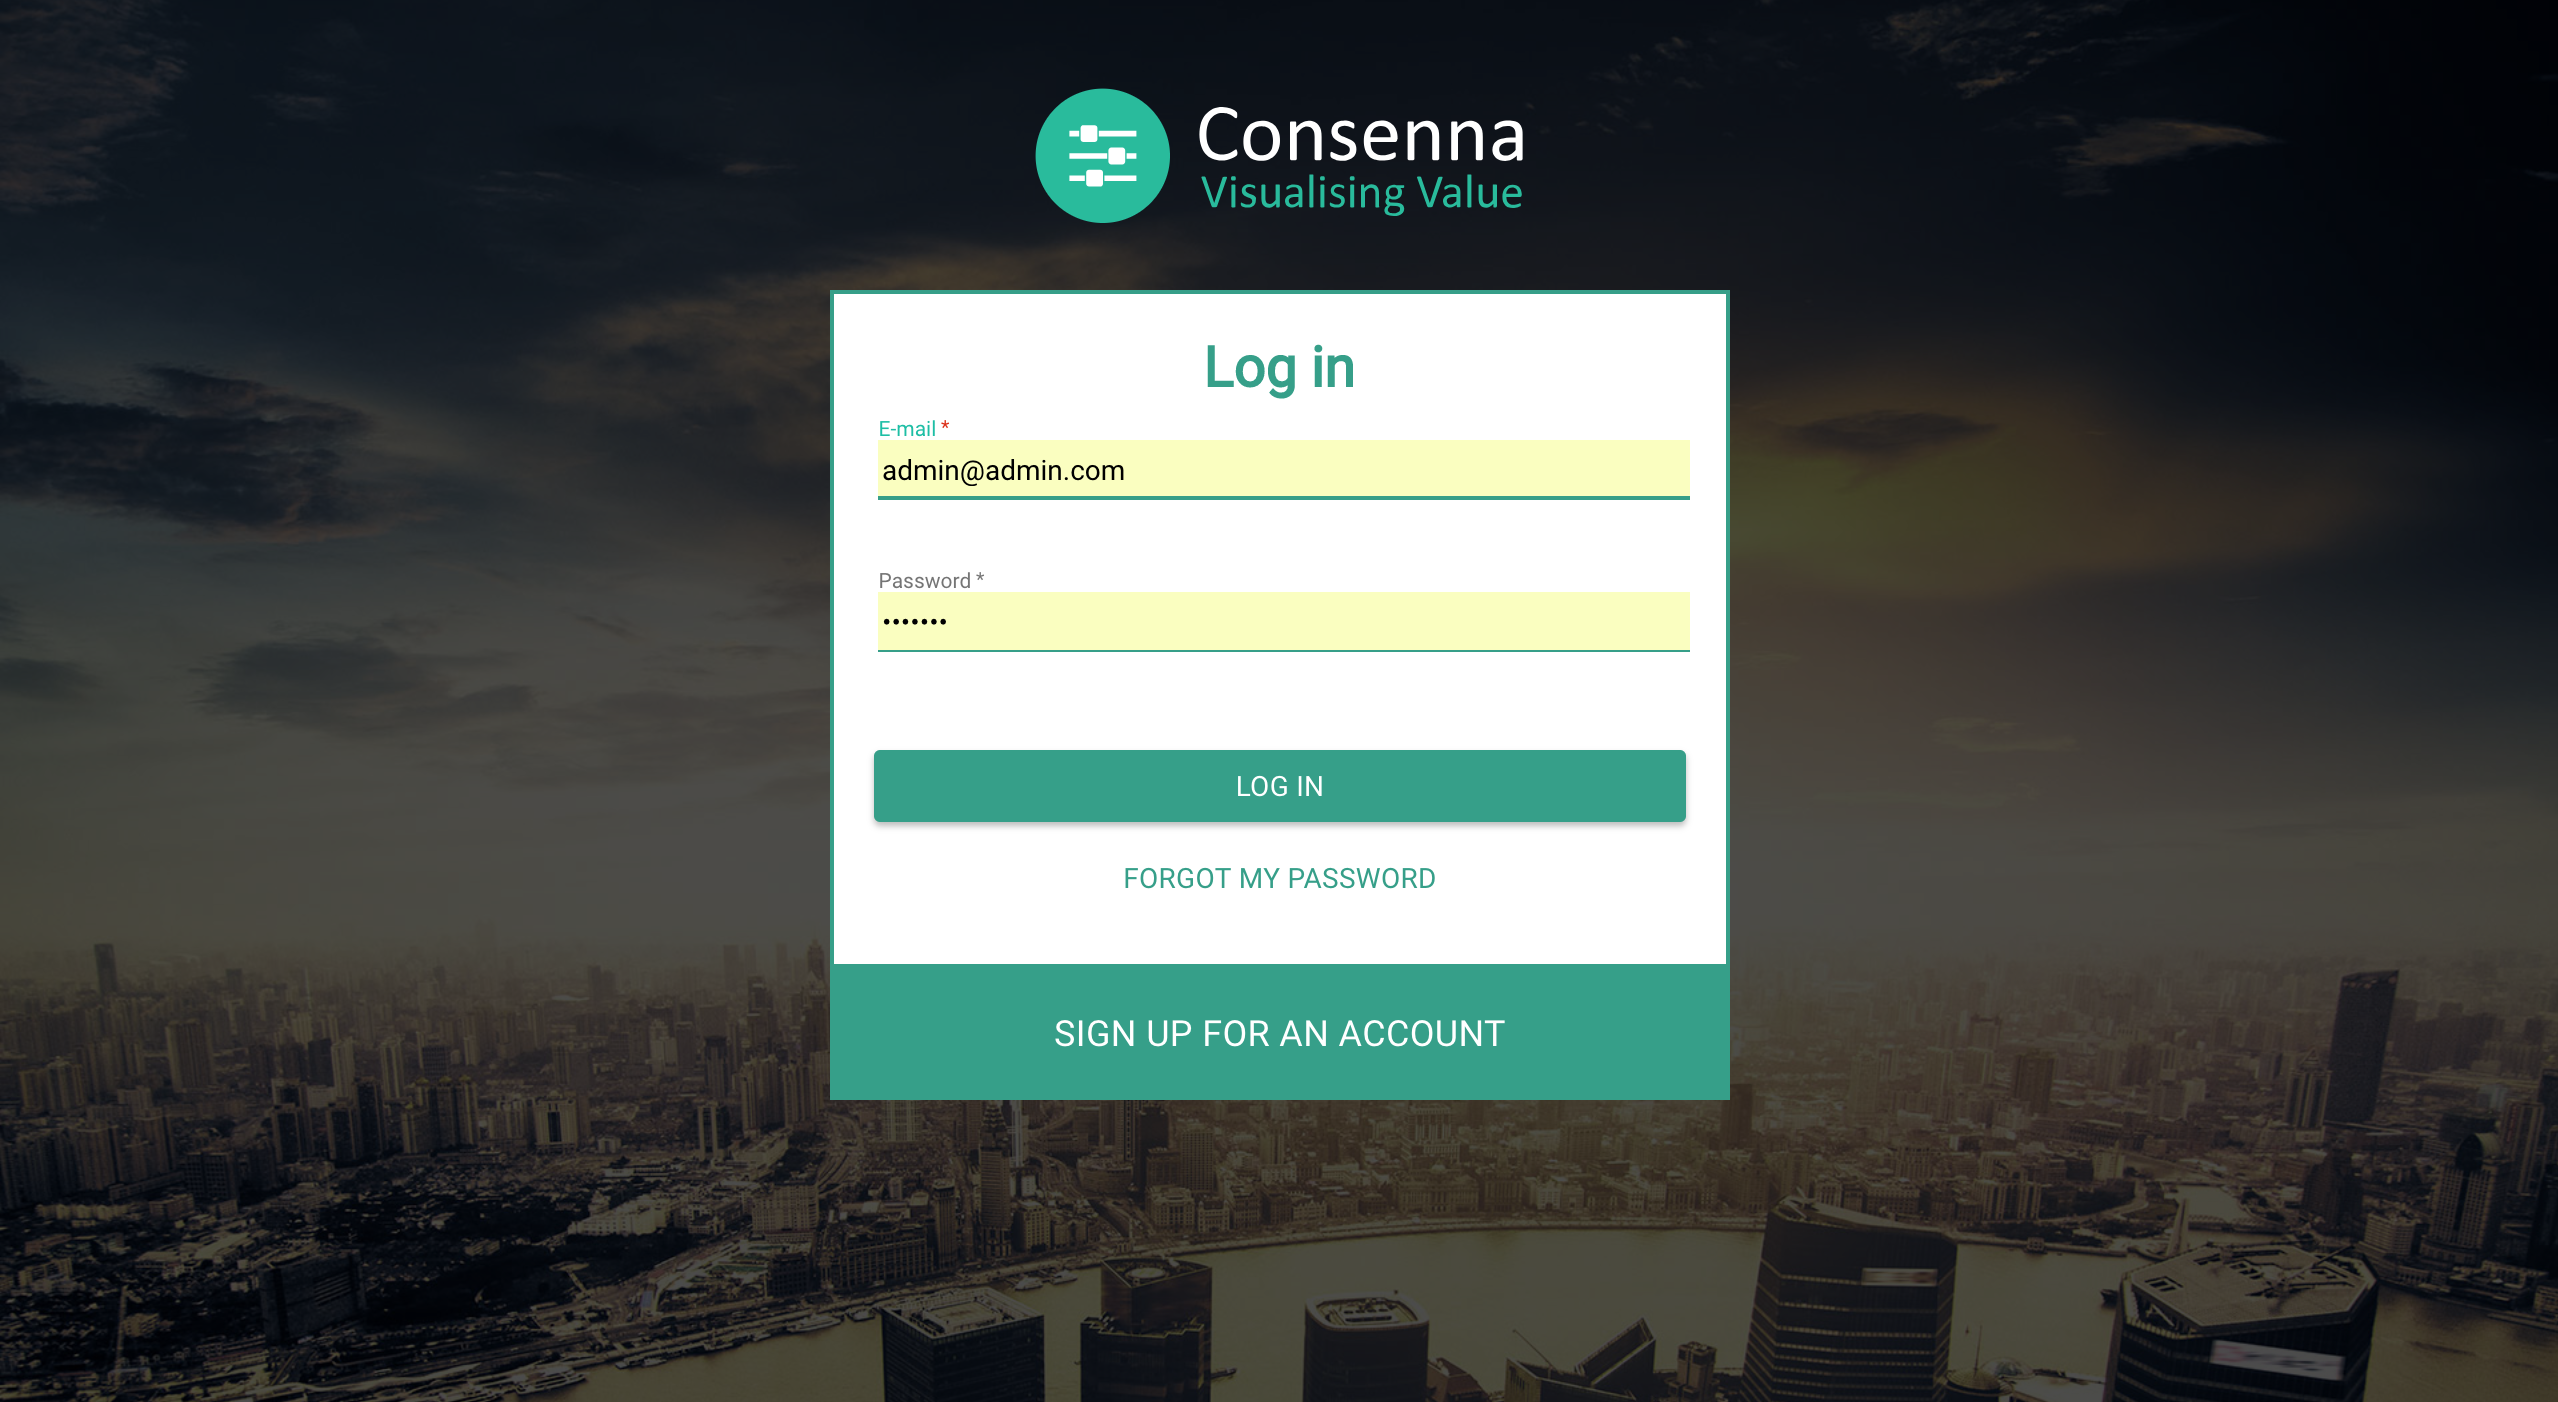 Consenna's log-in view